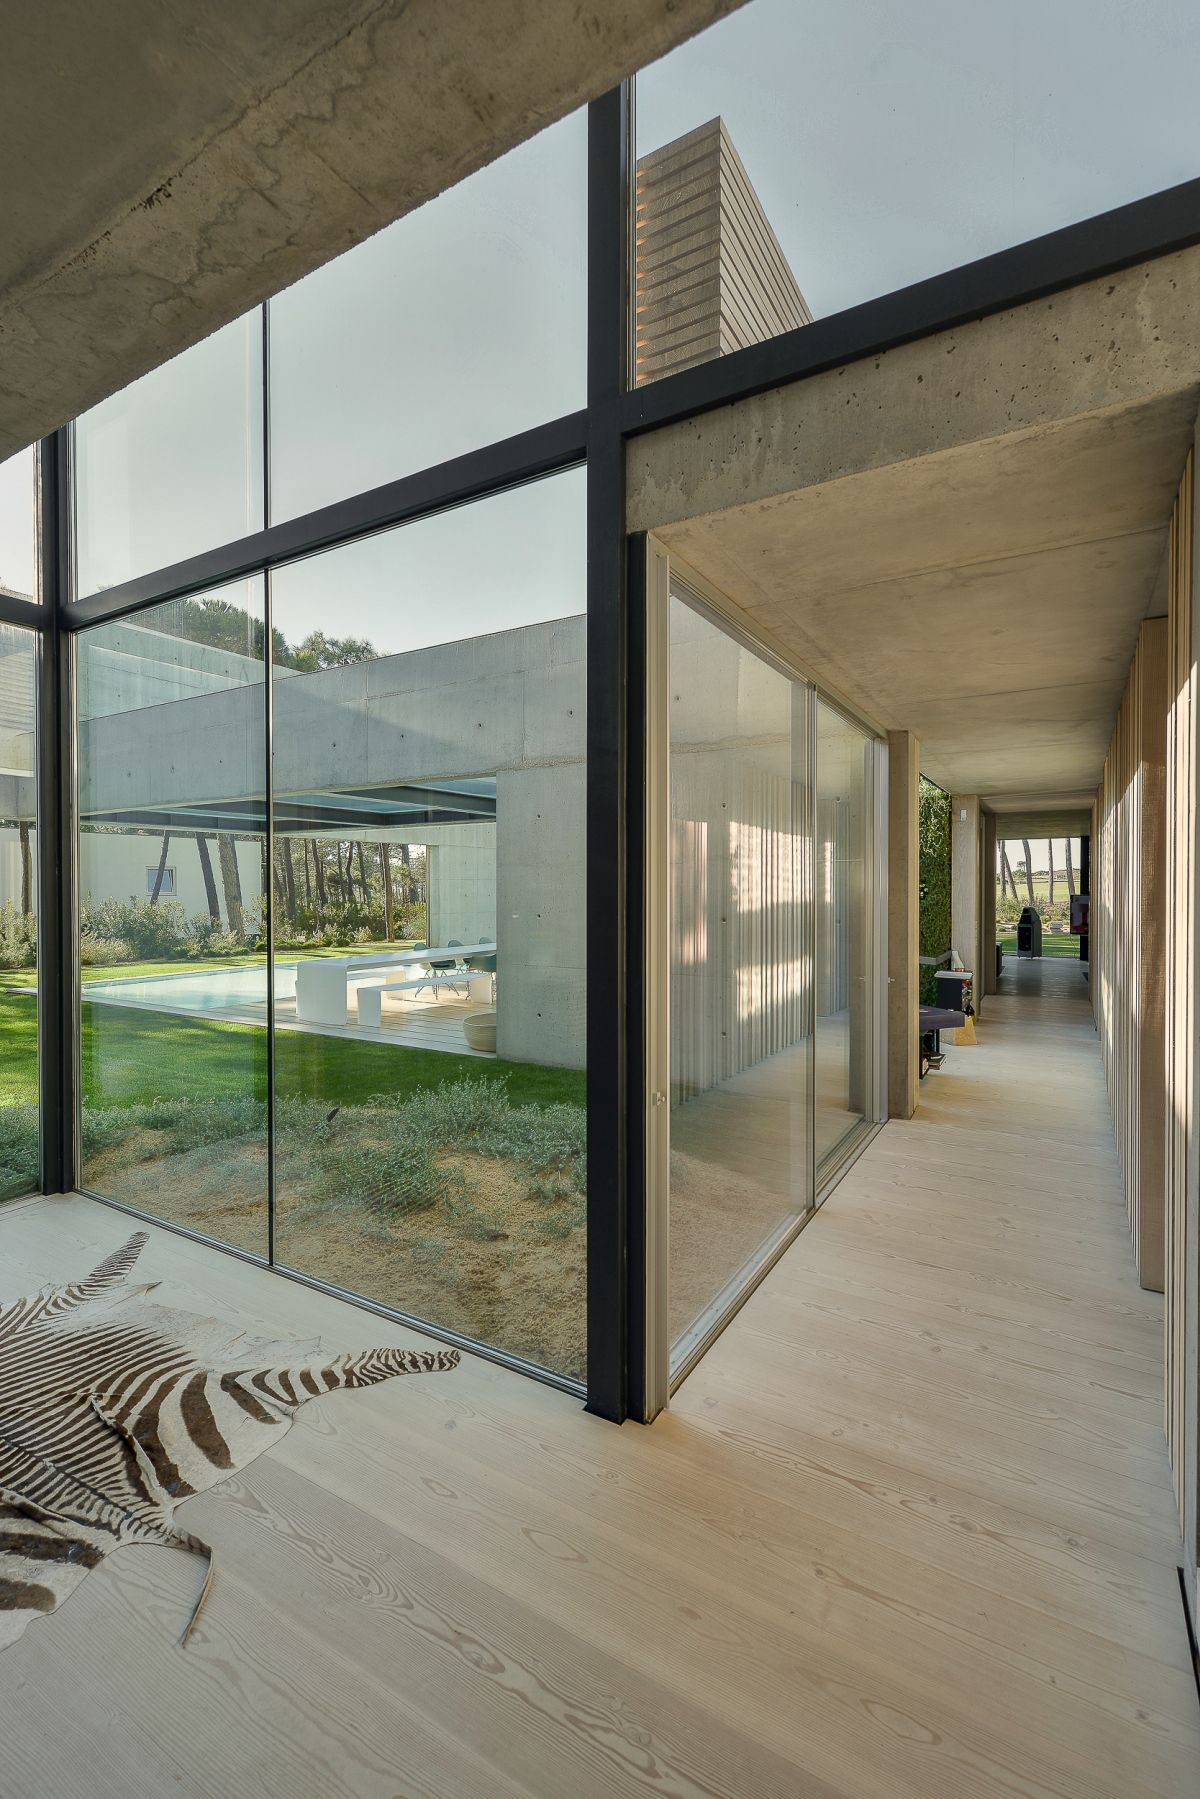 Glass walls make every part of the house seem expansive.